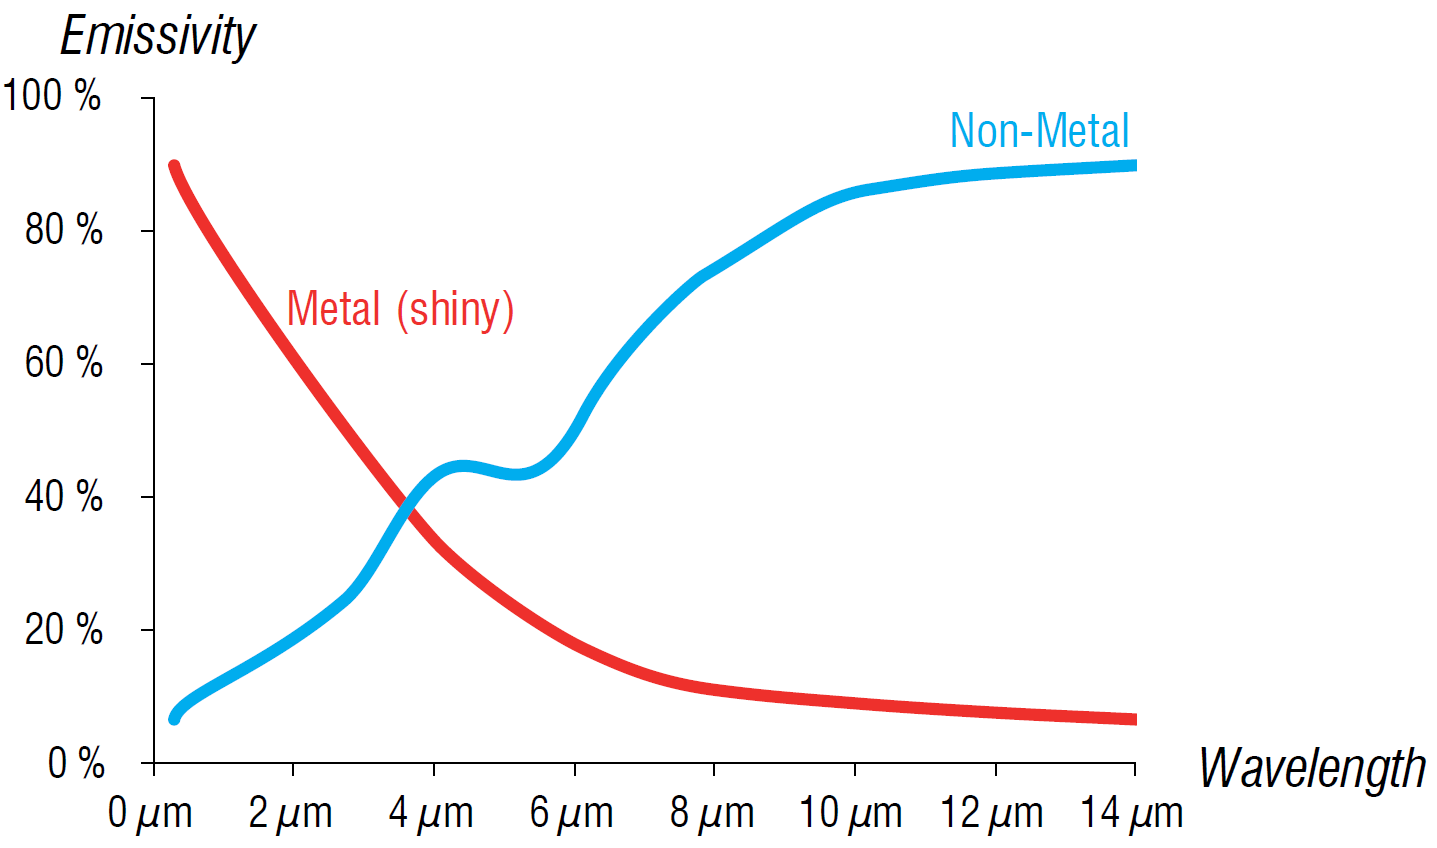 Figure 2: Maximum emissivity for metals and nonmetals varies with wavelength. Source: Micro-Epsilon